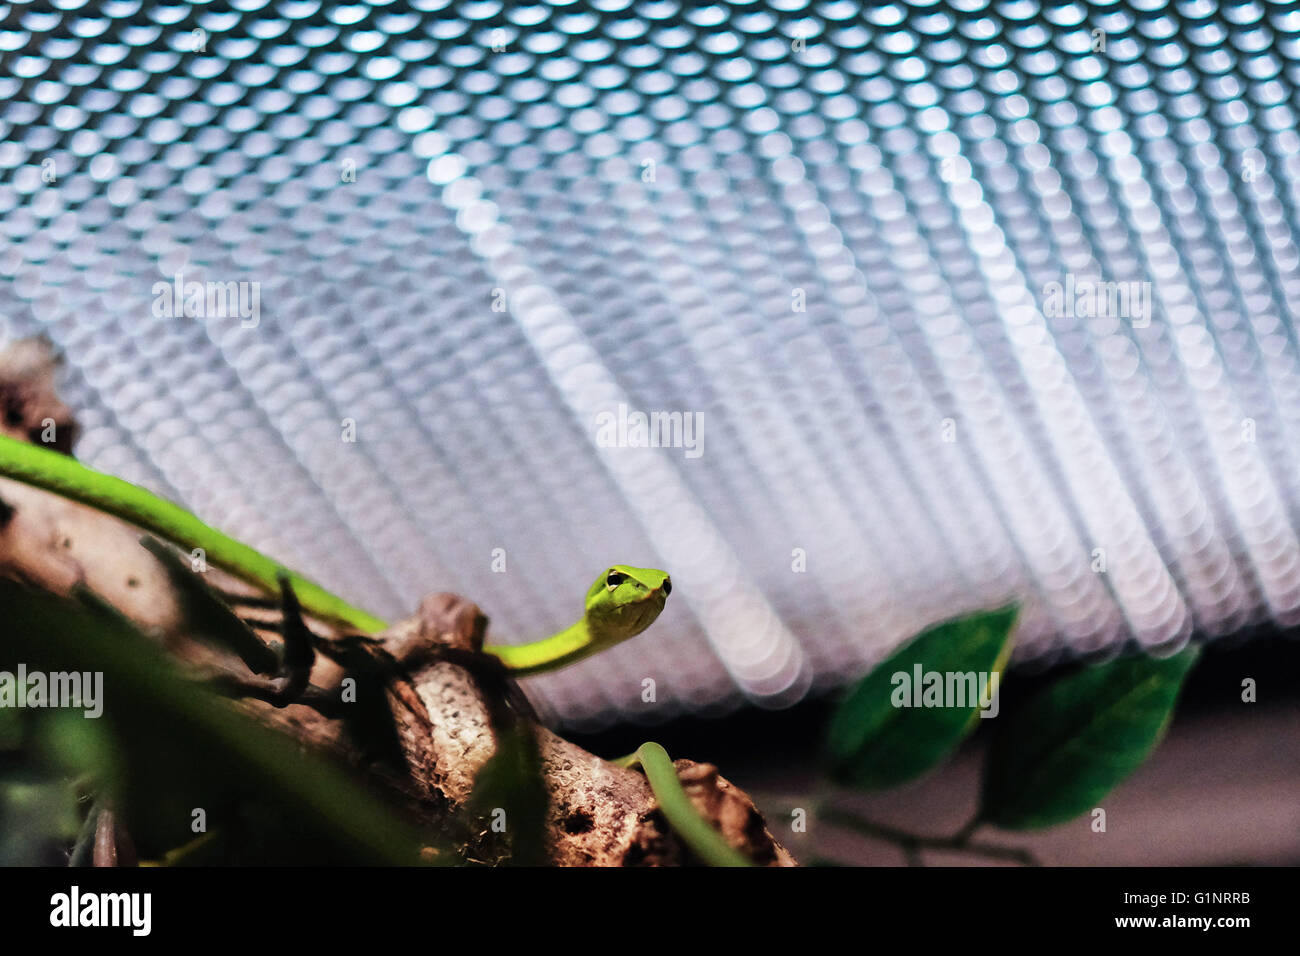 Bangkok, Thailand. 17th May, 2016. A long-nosed whip snake is seen at Queen Saovabha Memorial Institute's snake museum in Bangkok, Thailand, May 17, 2016. Founded in 1922, the Queen Saovabha Memorial Institute is a major research organization in Thailand that specializes in rabies and animal toxins. At the institute's snake museum, visitors will see dozens of venomous and non-venomous snake breeds as well as learn emergency treatments for snake bites. © Li Mangmang/Xinhua/Alamy Live News Stock Photo